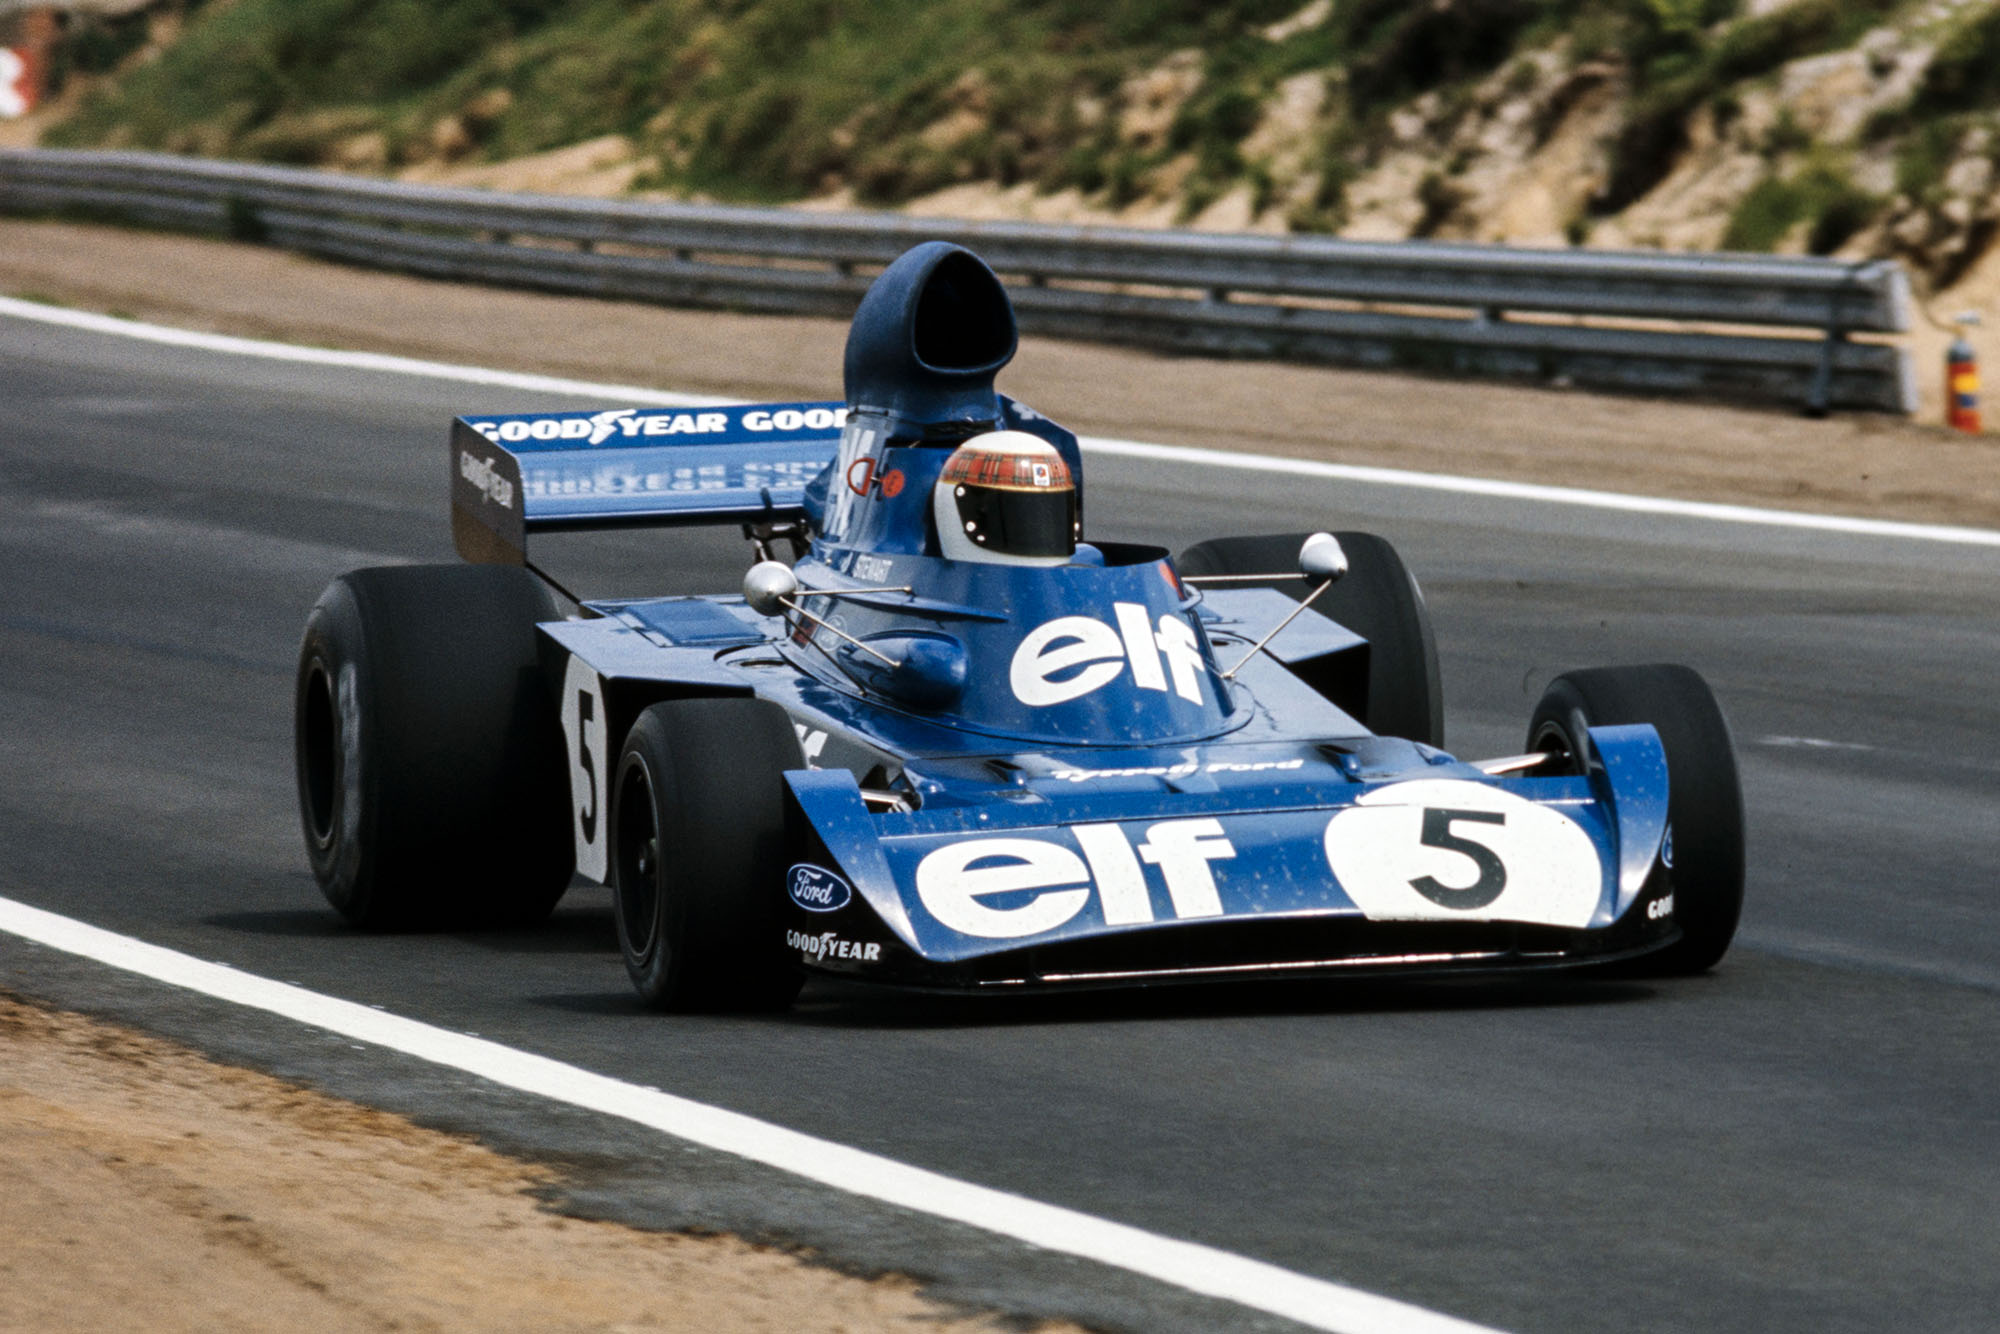 Jackie Stewart driving for Tyrrell at the 1973 Belgian Grand Prix